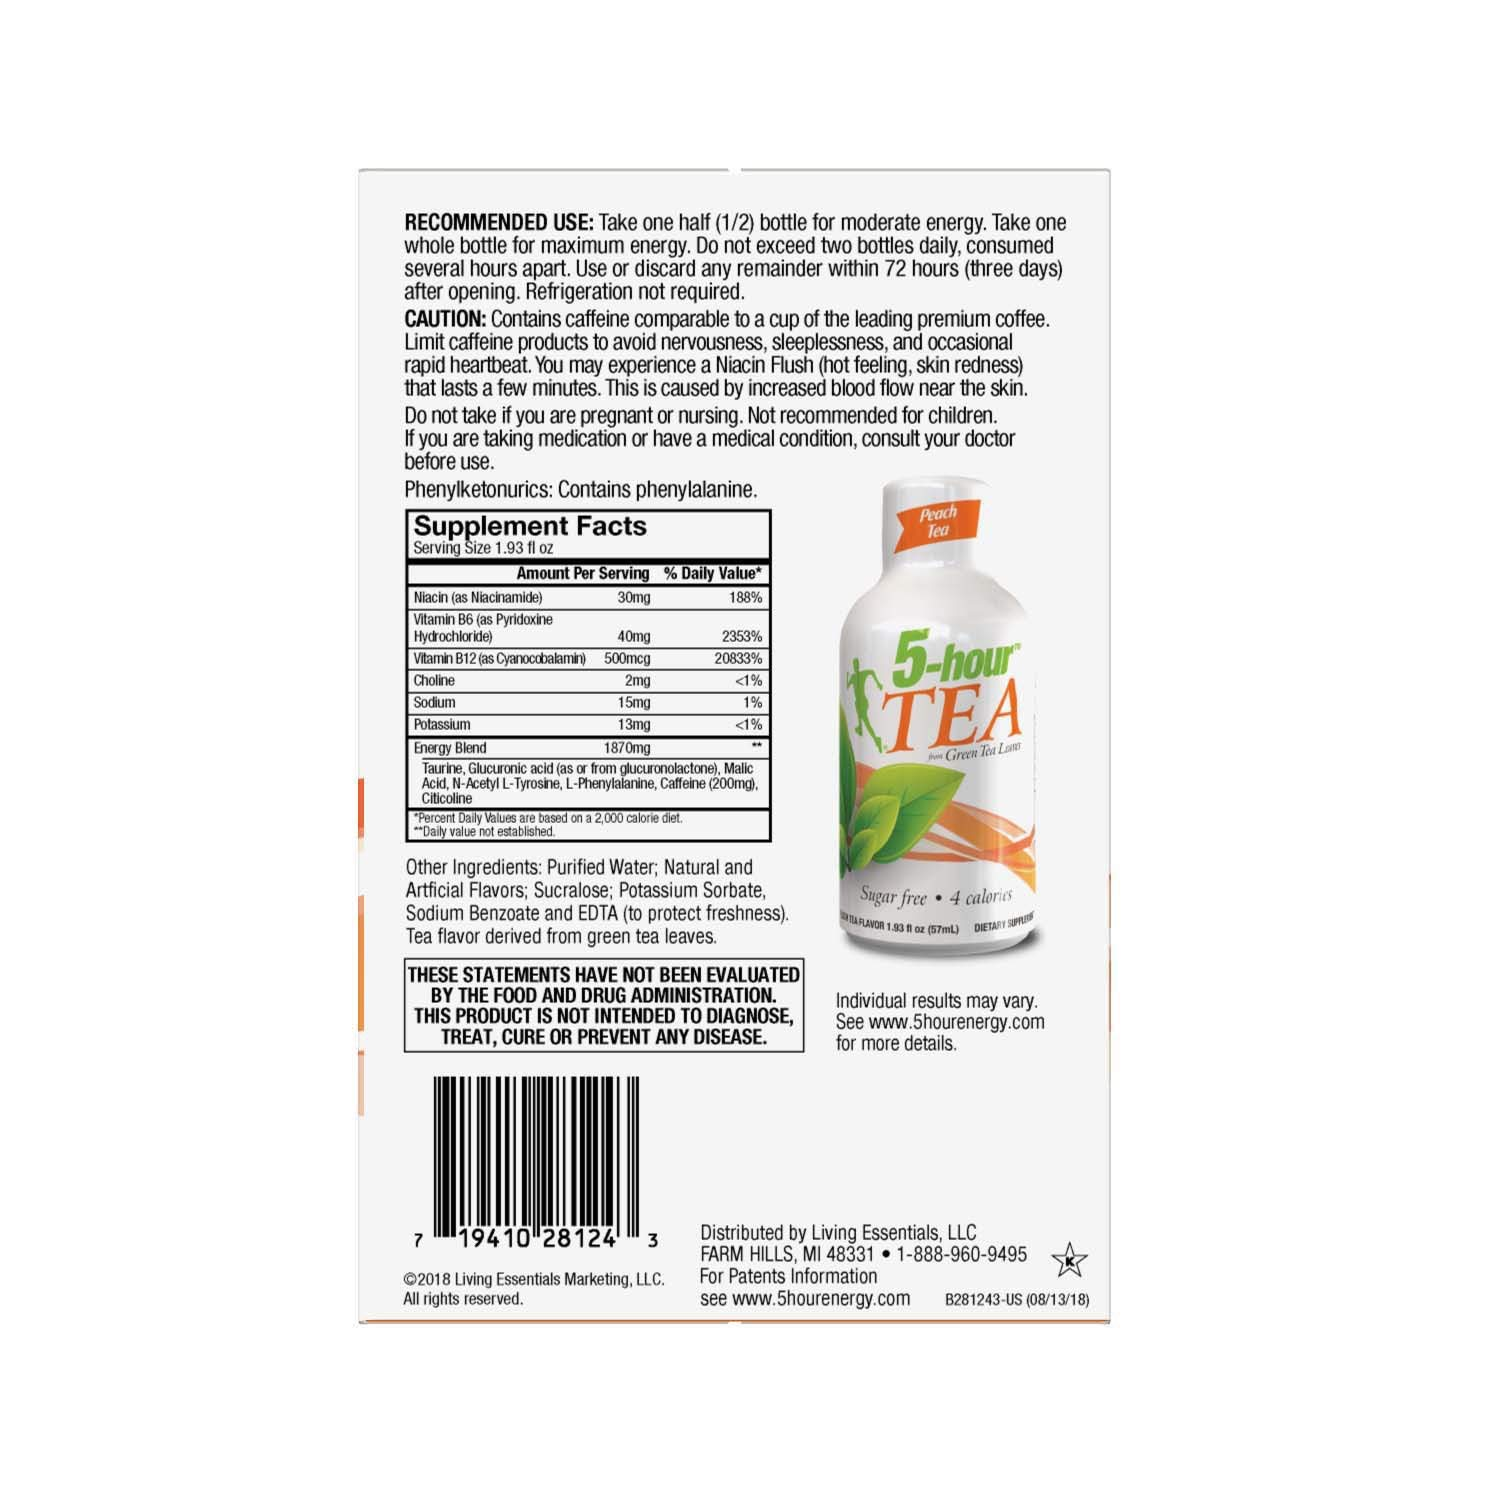 5-hour Green TEA - Peach Flavored - 24 Count by 5-Hours (Image #5)